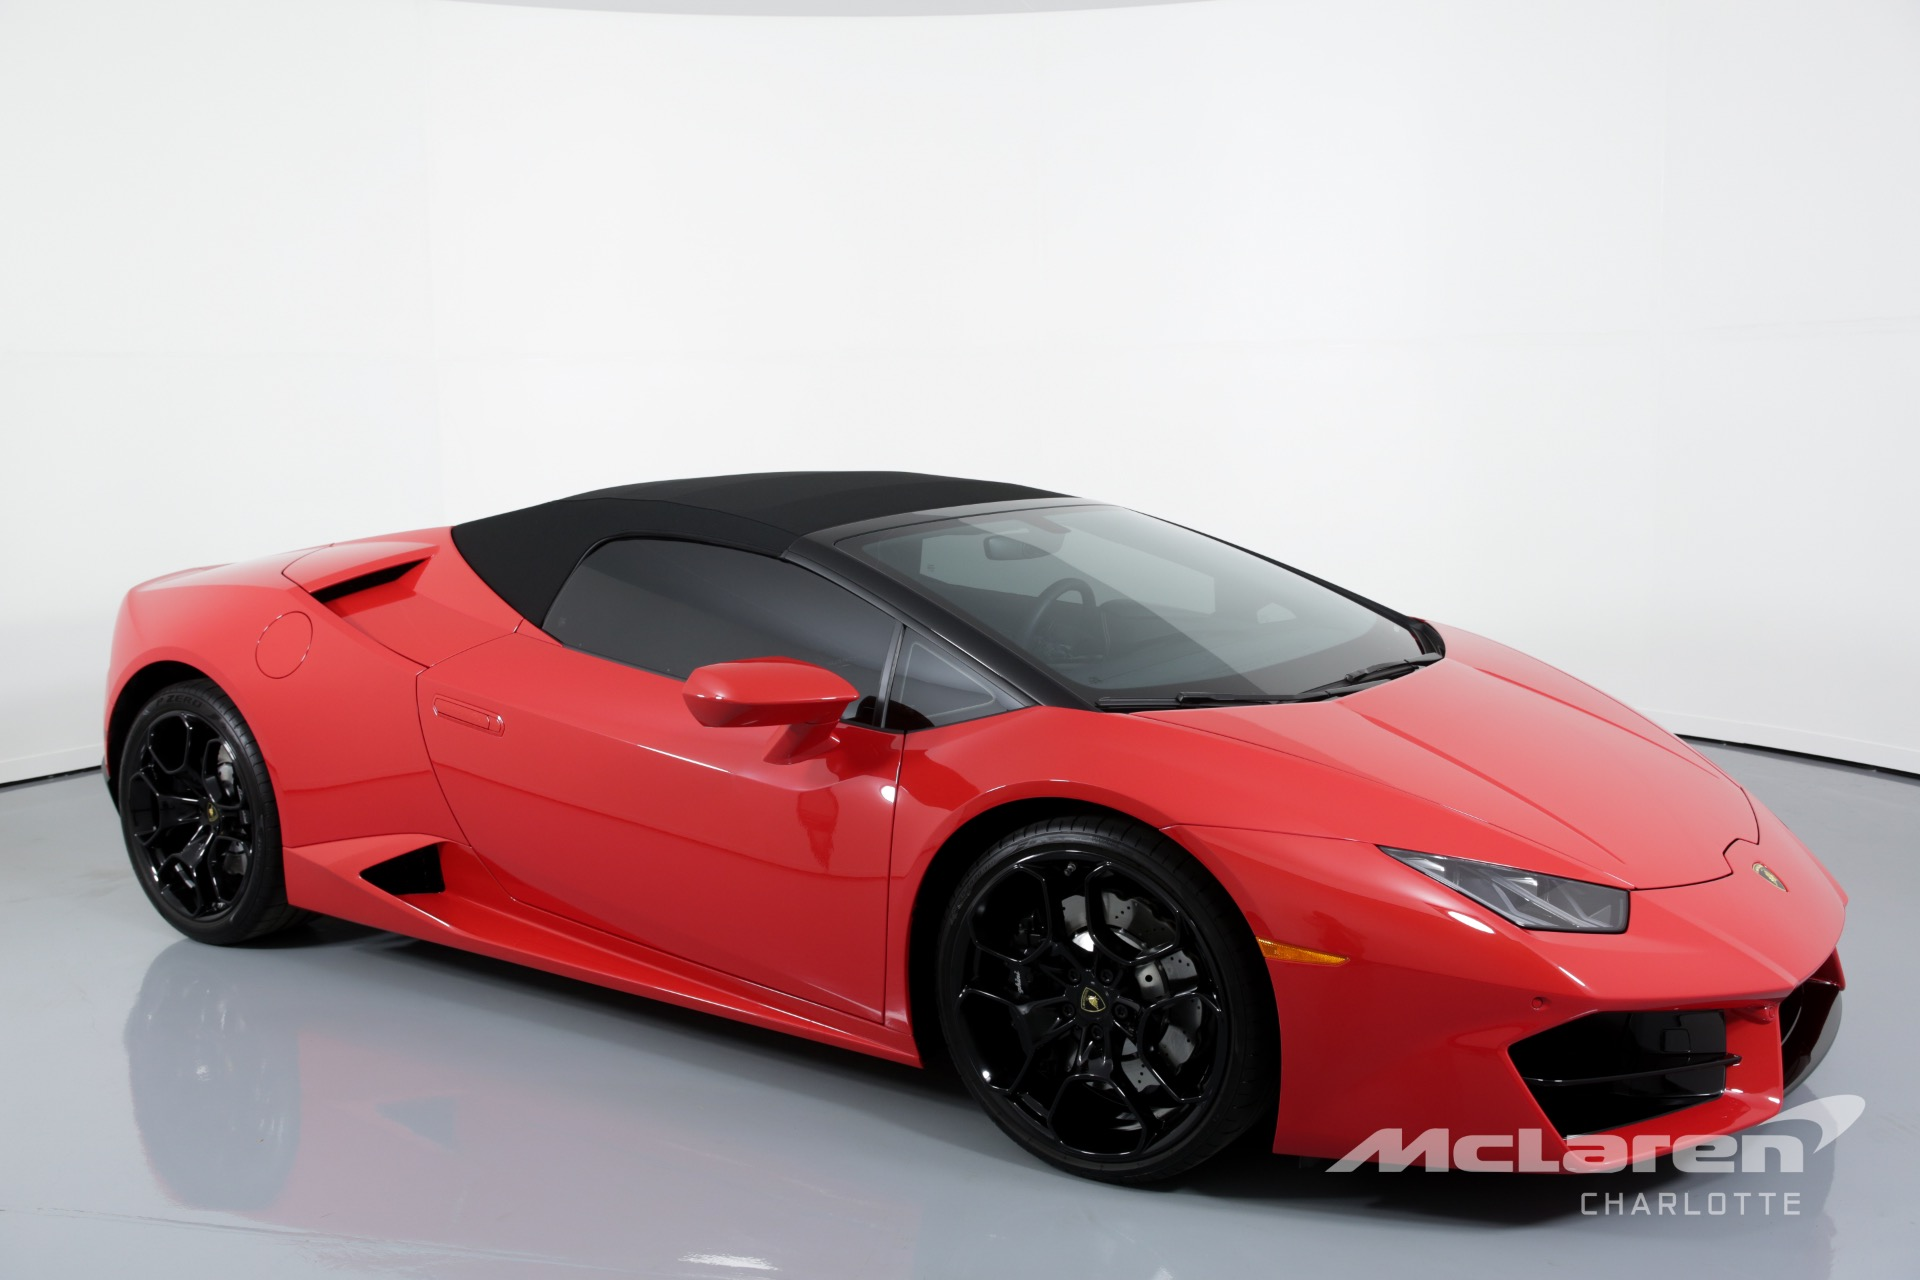 Used 2018 Lamborghini Huracan Lp 580 2 Spyder For Sale 220 996